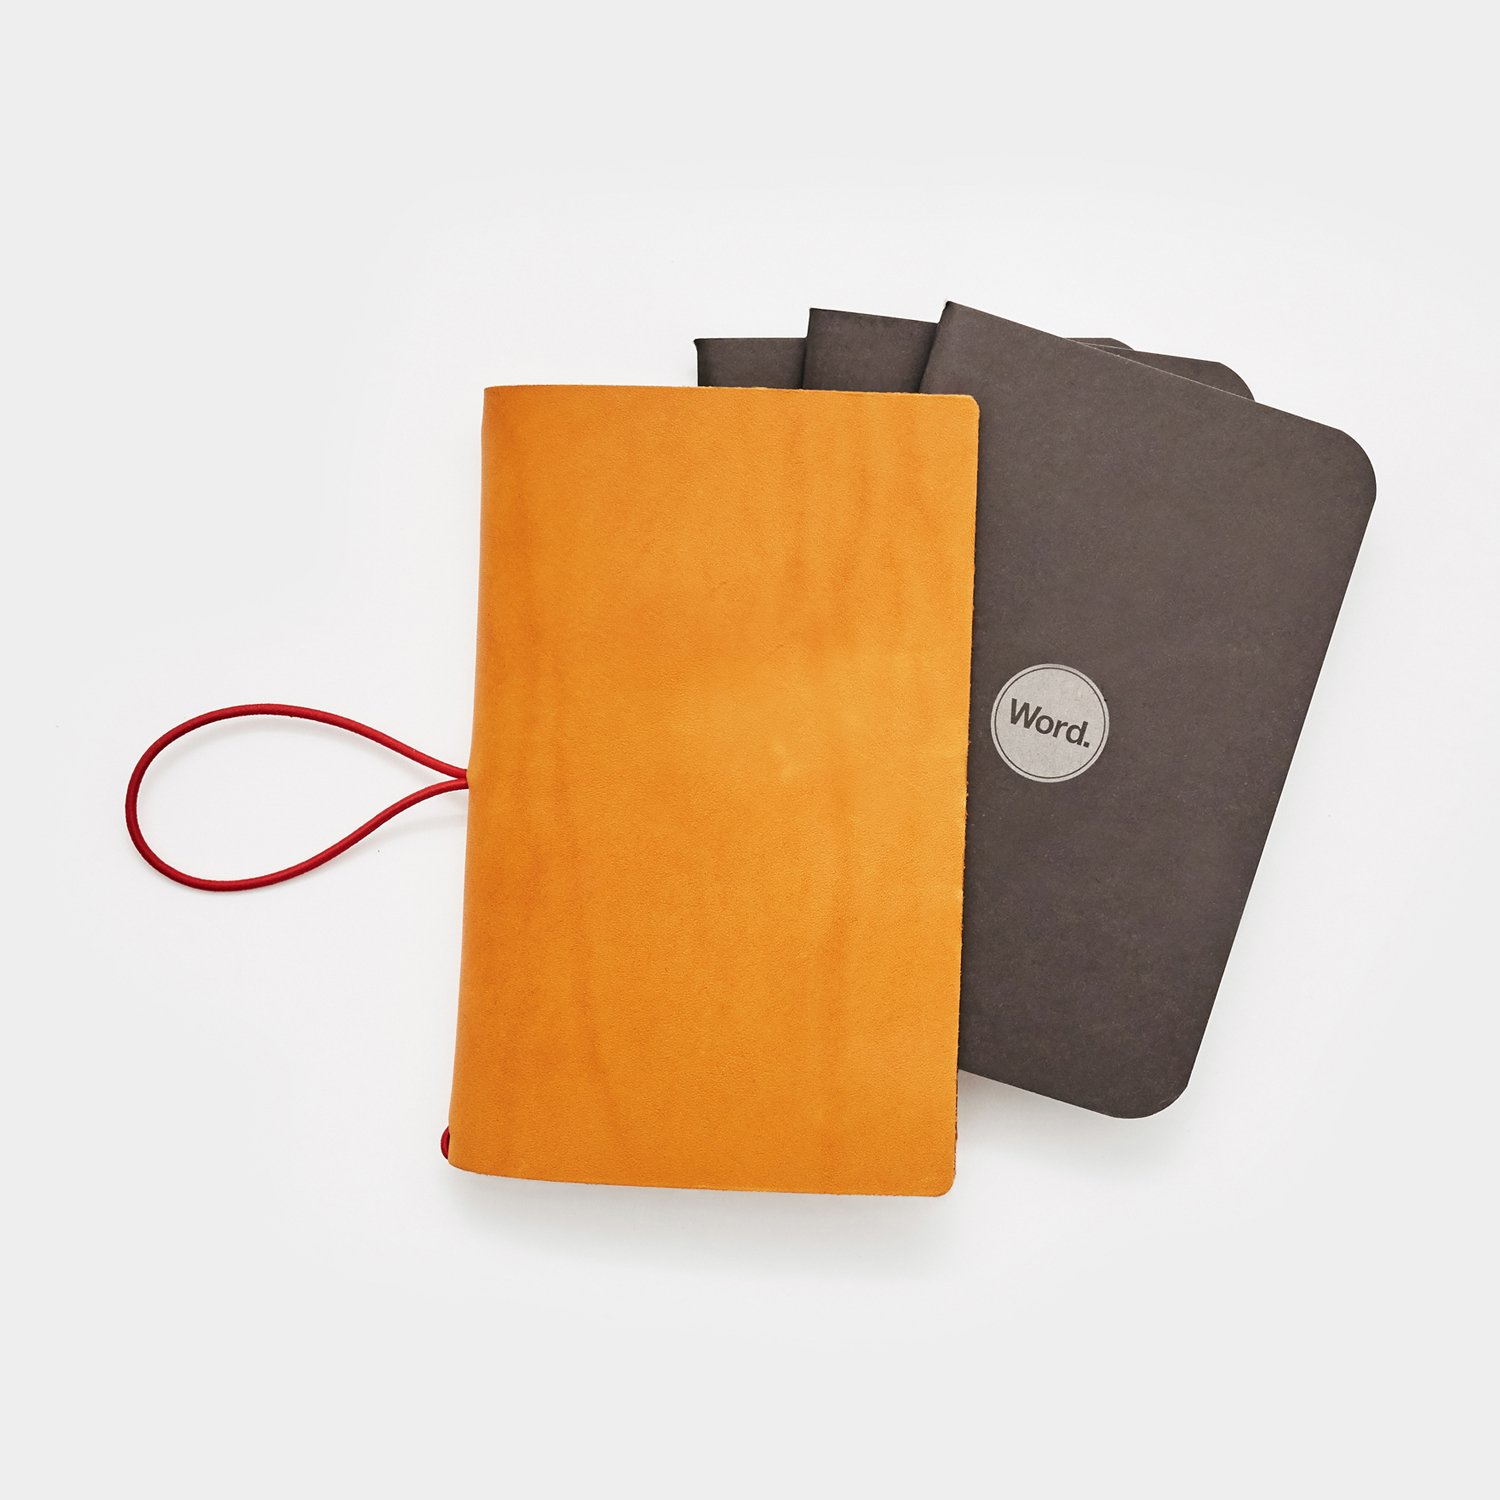 Leather Cover w/ 3-Pack Notebooks/Journals. Pocket Sized. Made in USA. Word. Notebooks. (Chestnut Leather/Black Notebooks)